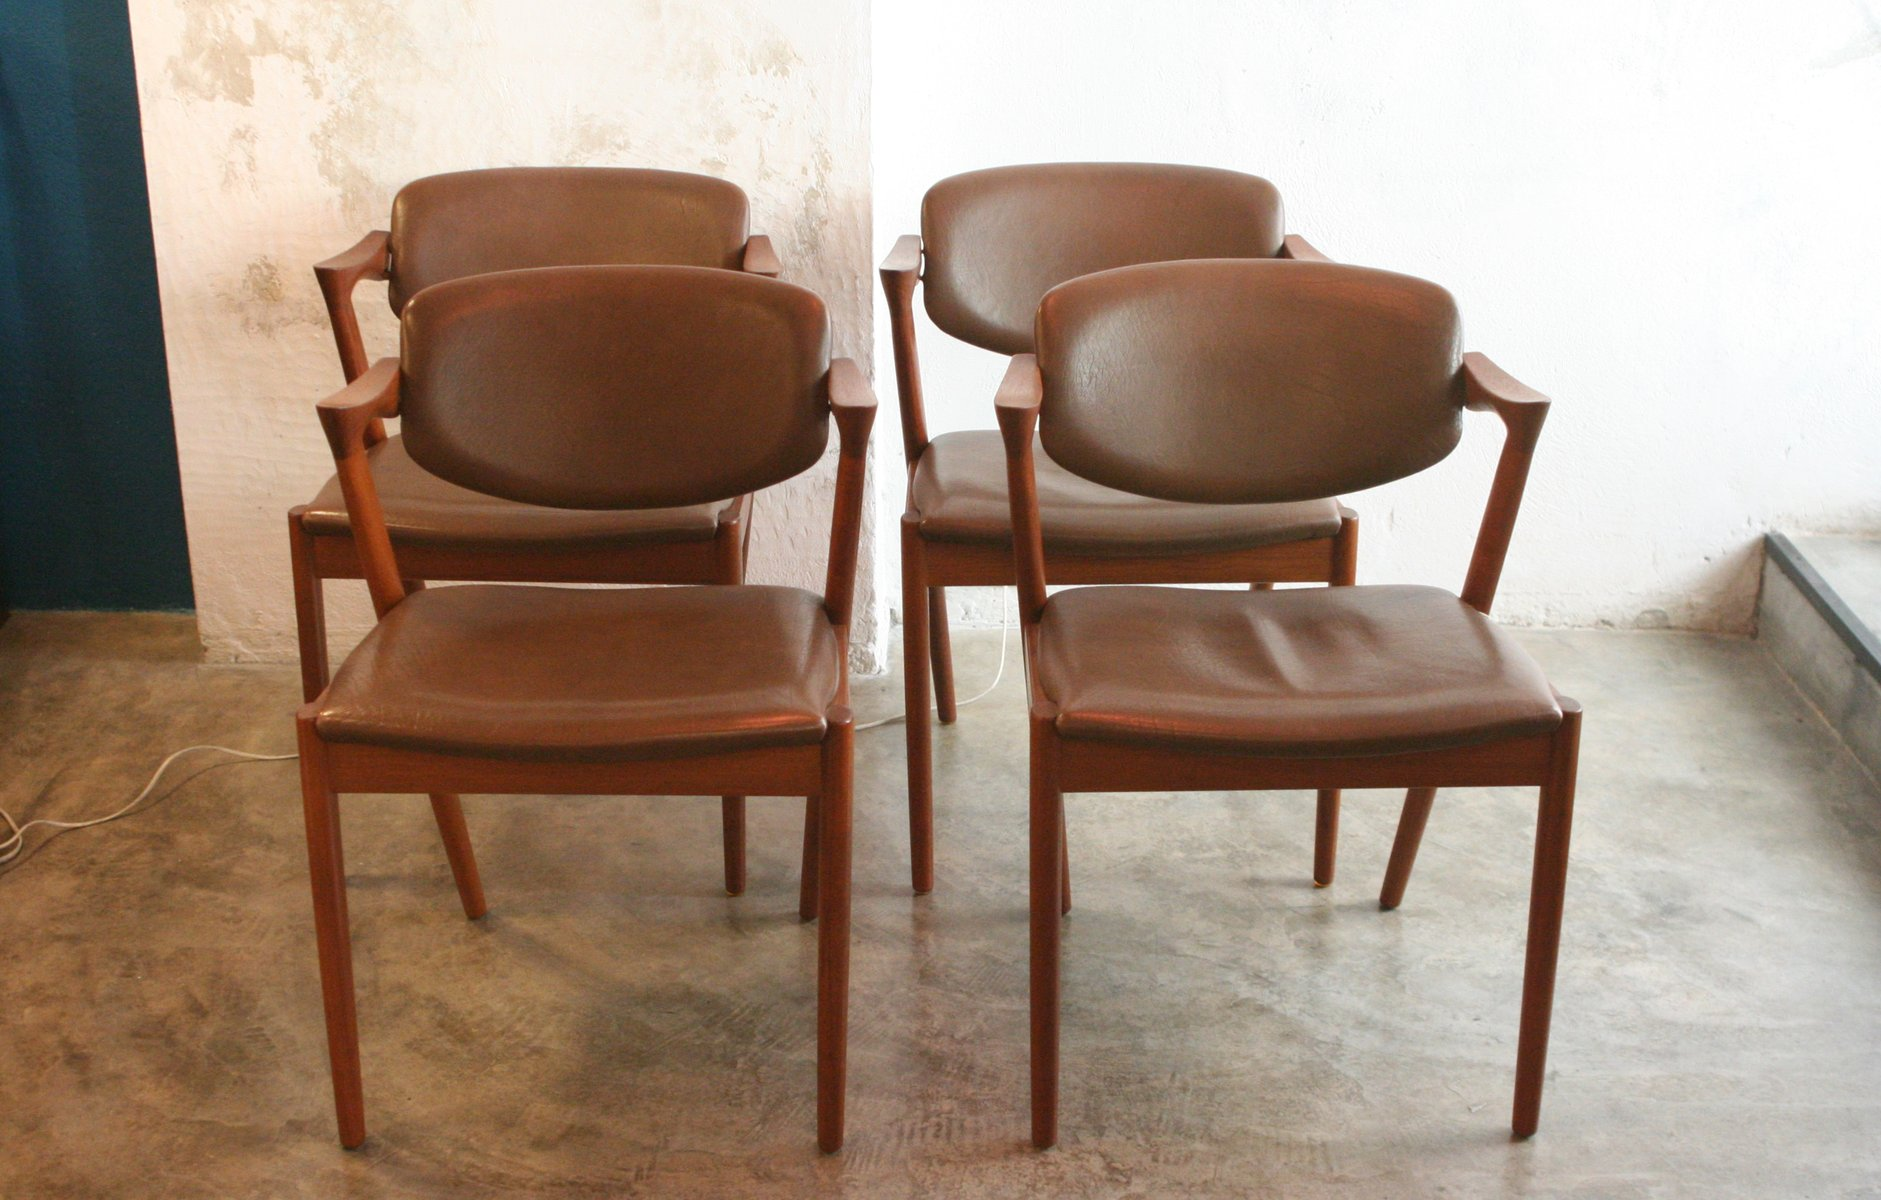 Vintage model 42 teak and leather chairs by kai kristiansen set of 4 for sale at pamono - Kai kristiansen chairs ...